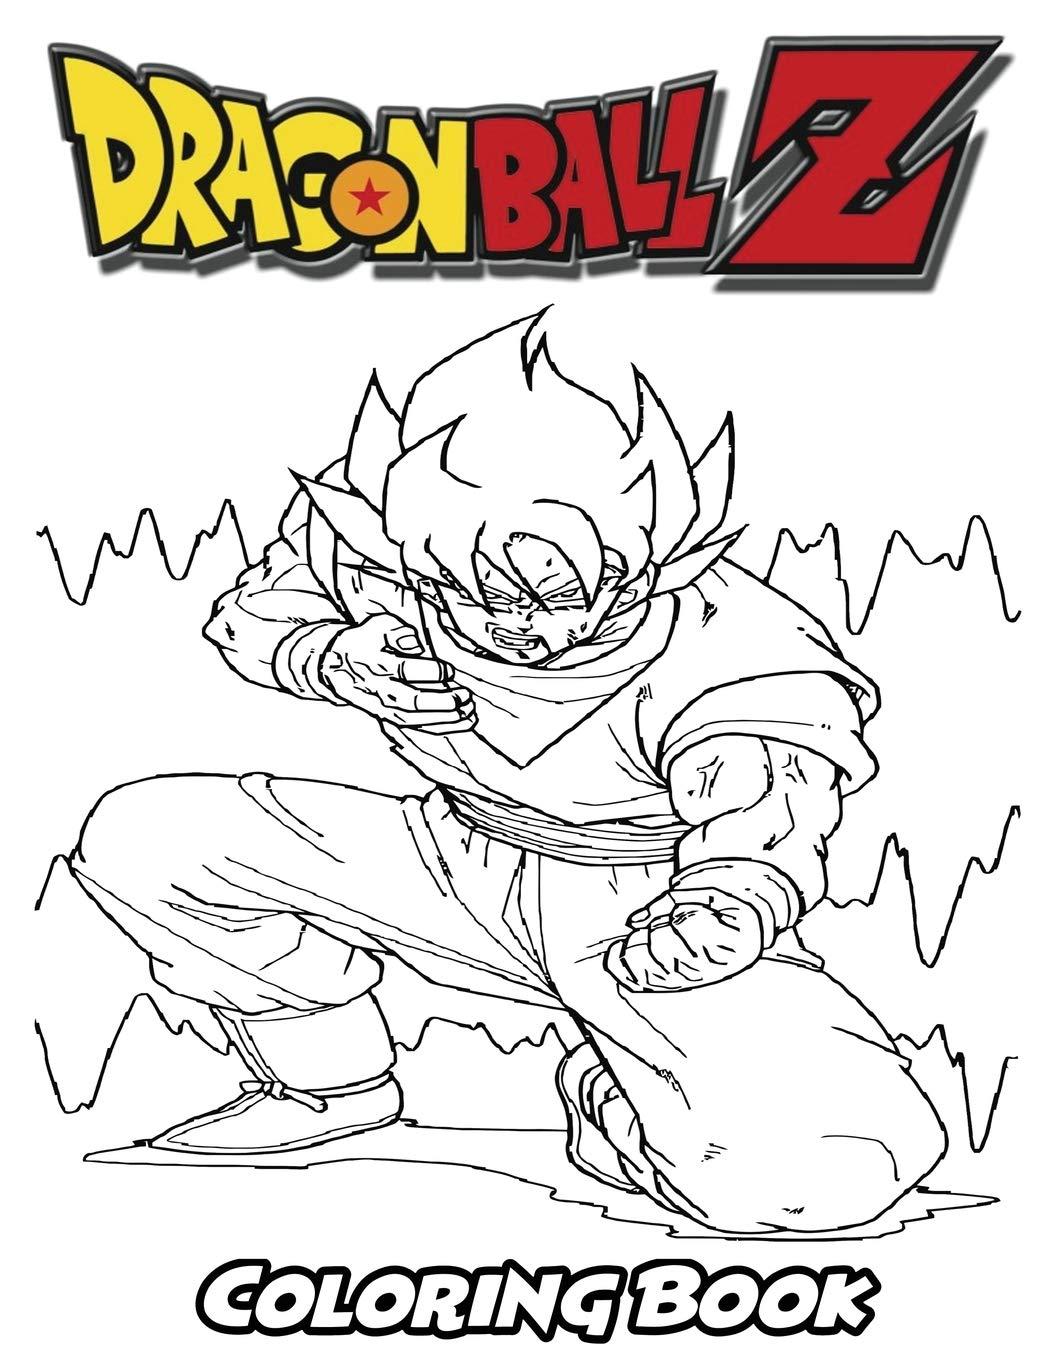 Amazon.com: Dragon Ball Z Coloring Book: Coloring Book for ...